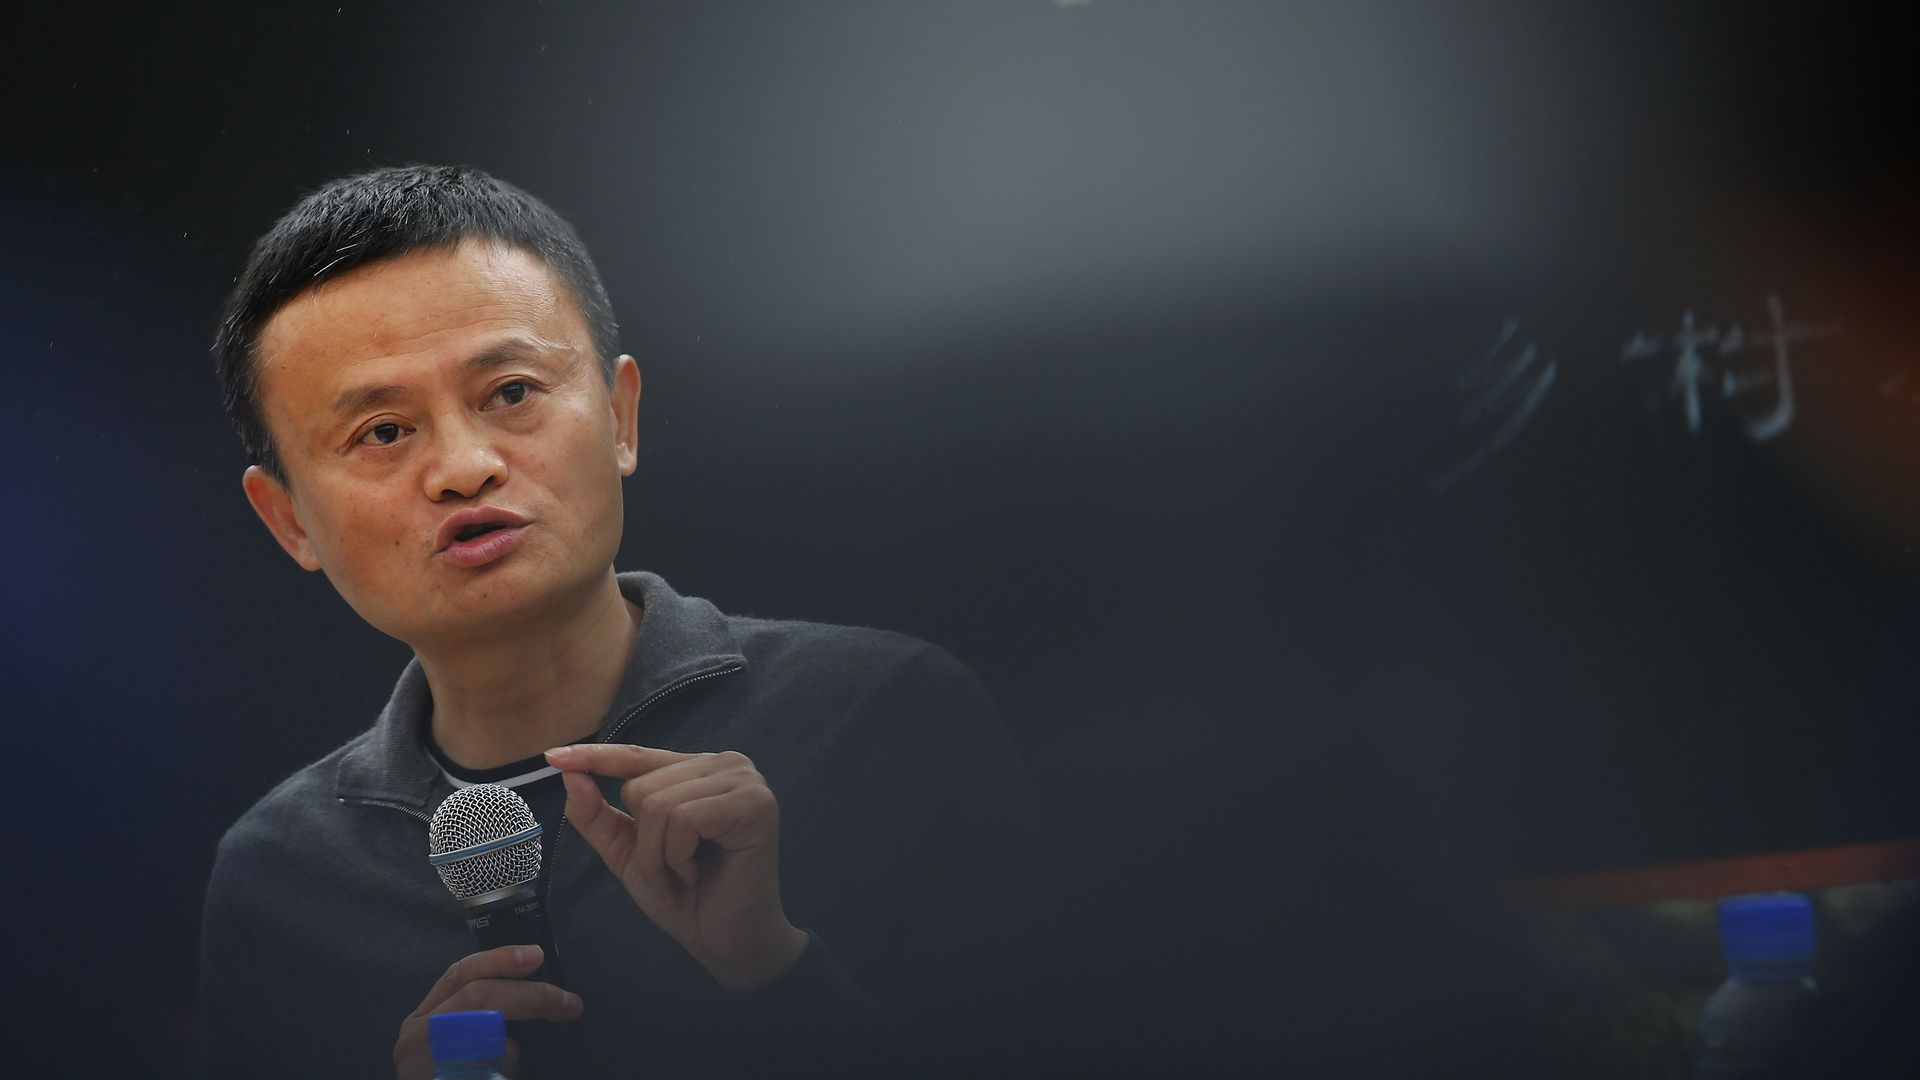 Jack Ma giving a talk.